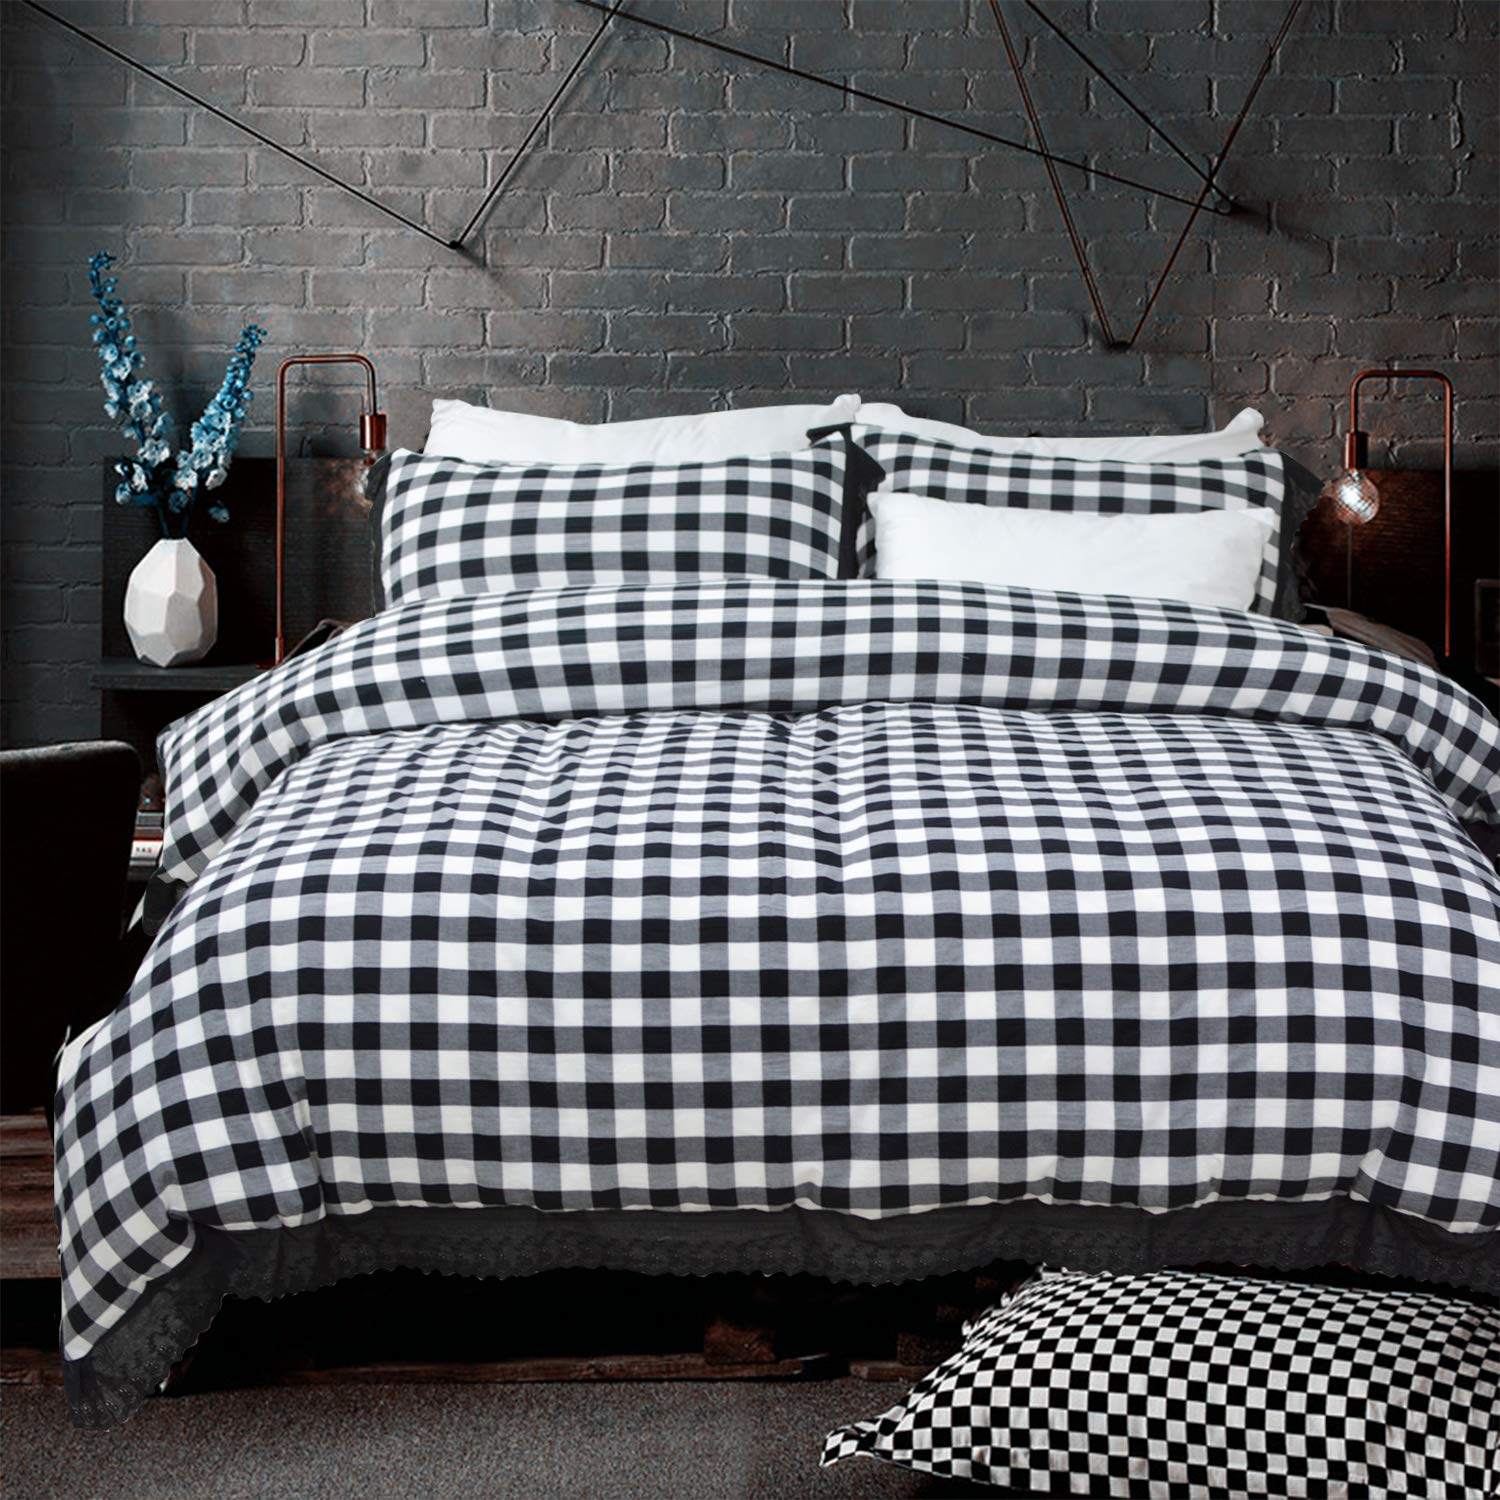 Softta Duvet Cover King Bedding SetBlack and White Buffalo Plaid Bed Set Vintage Ruffle Check Grid Geometric 100% Washed Cotton with Zipper Ties 1 Duvet Cover + 2 Pillow Shams